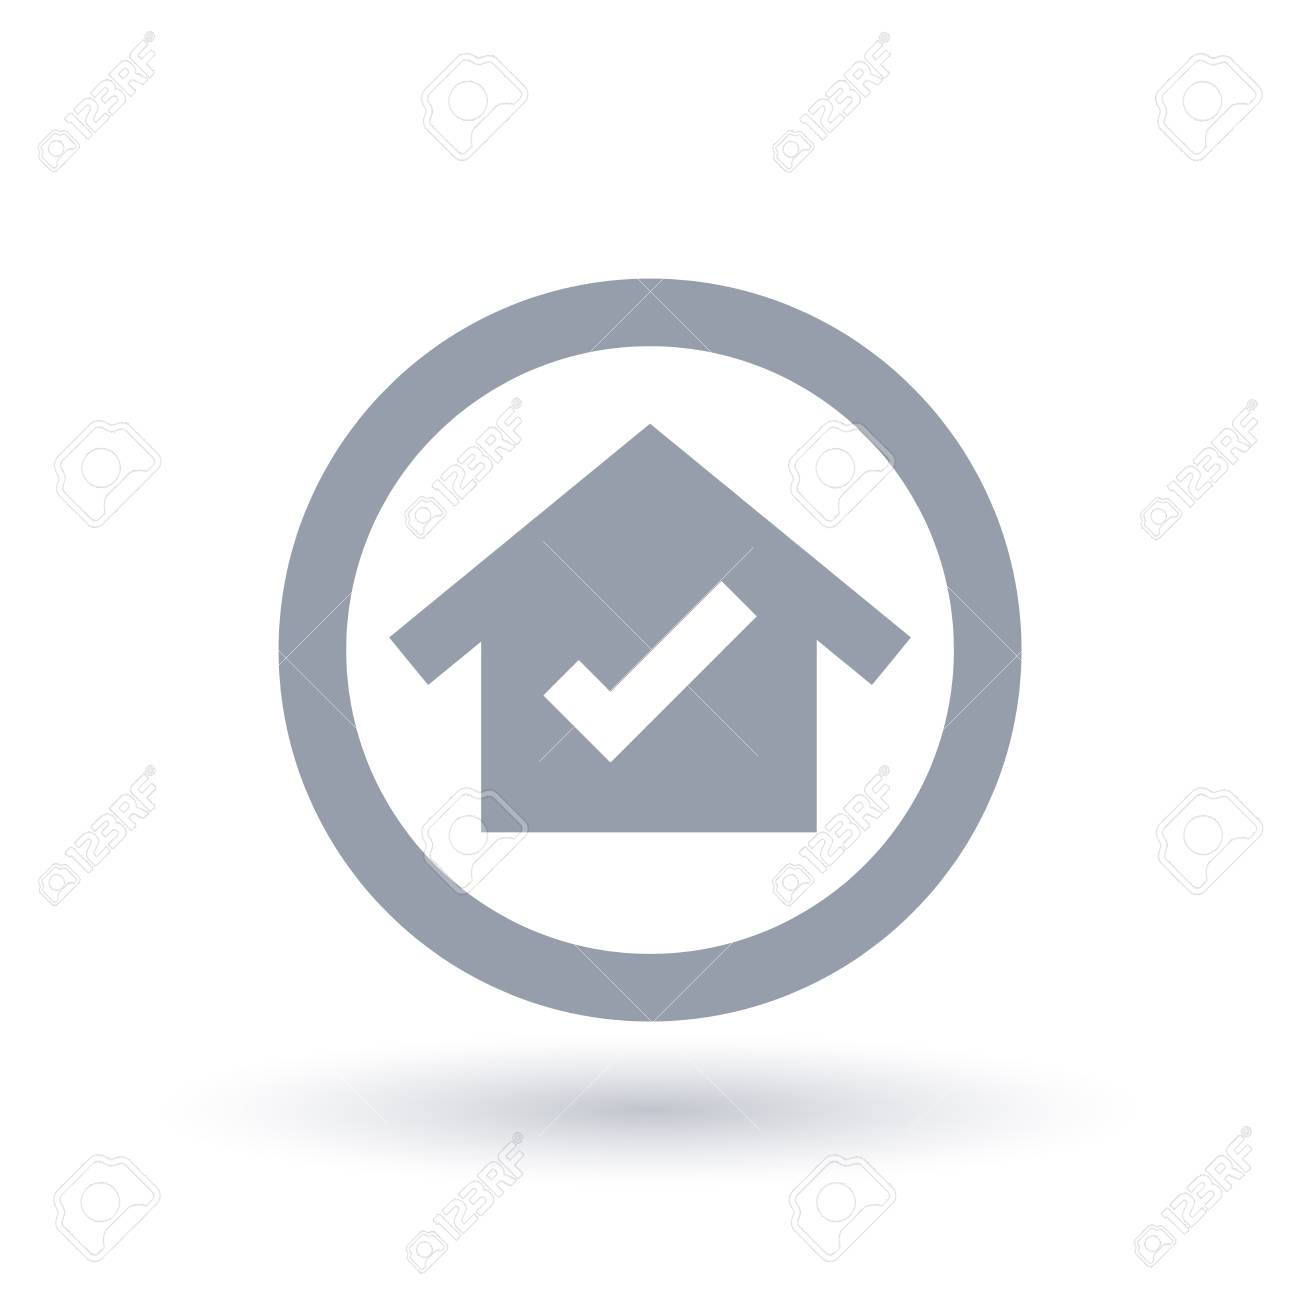 House tick icon, home check mark symbol  Real estate sign in